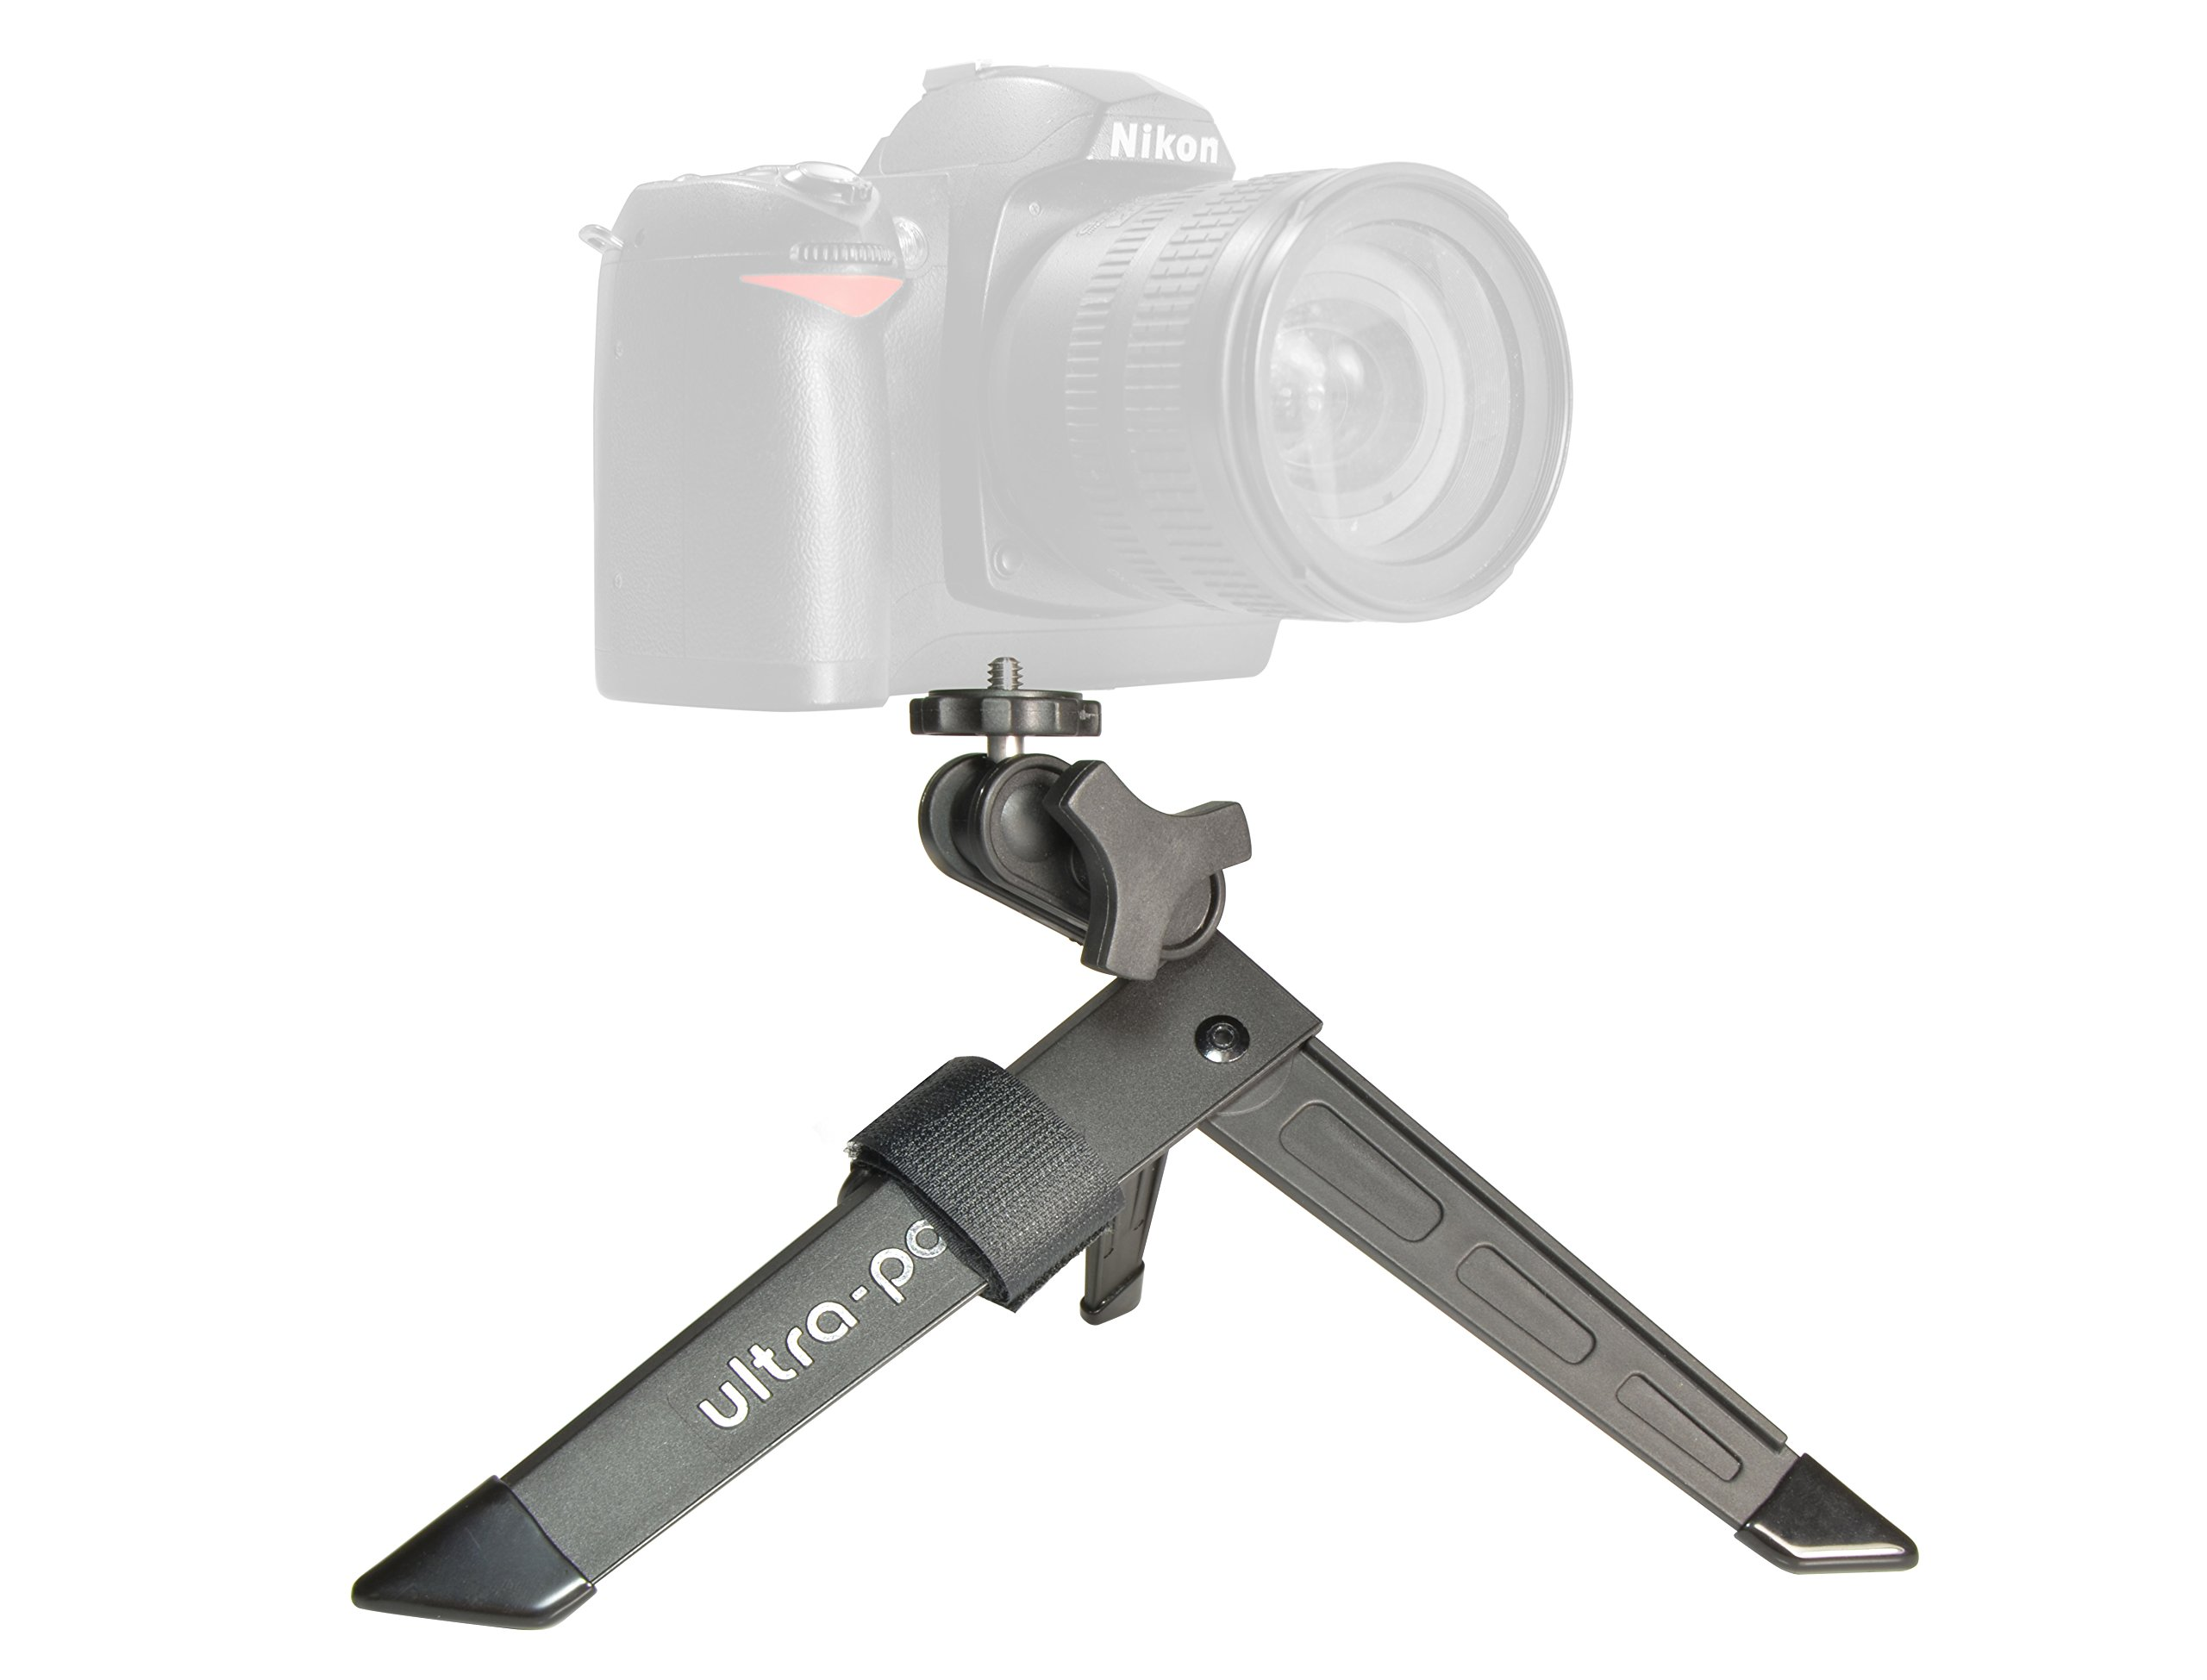 Pedco Ultrapod Ii Lightweight Camera Tripod 18